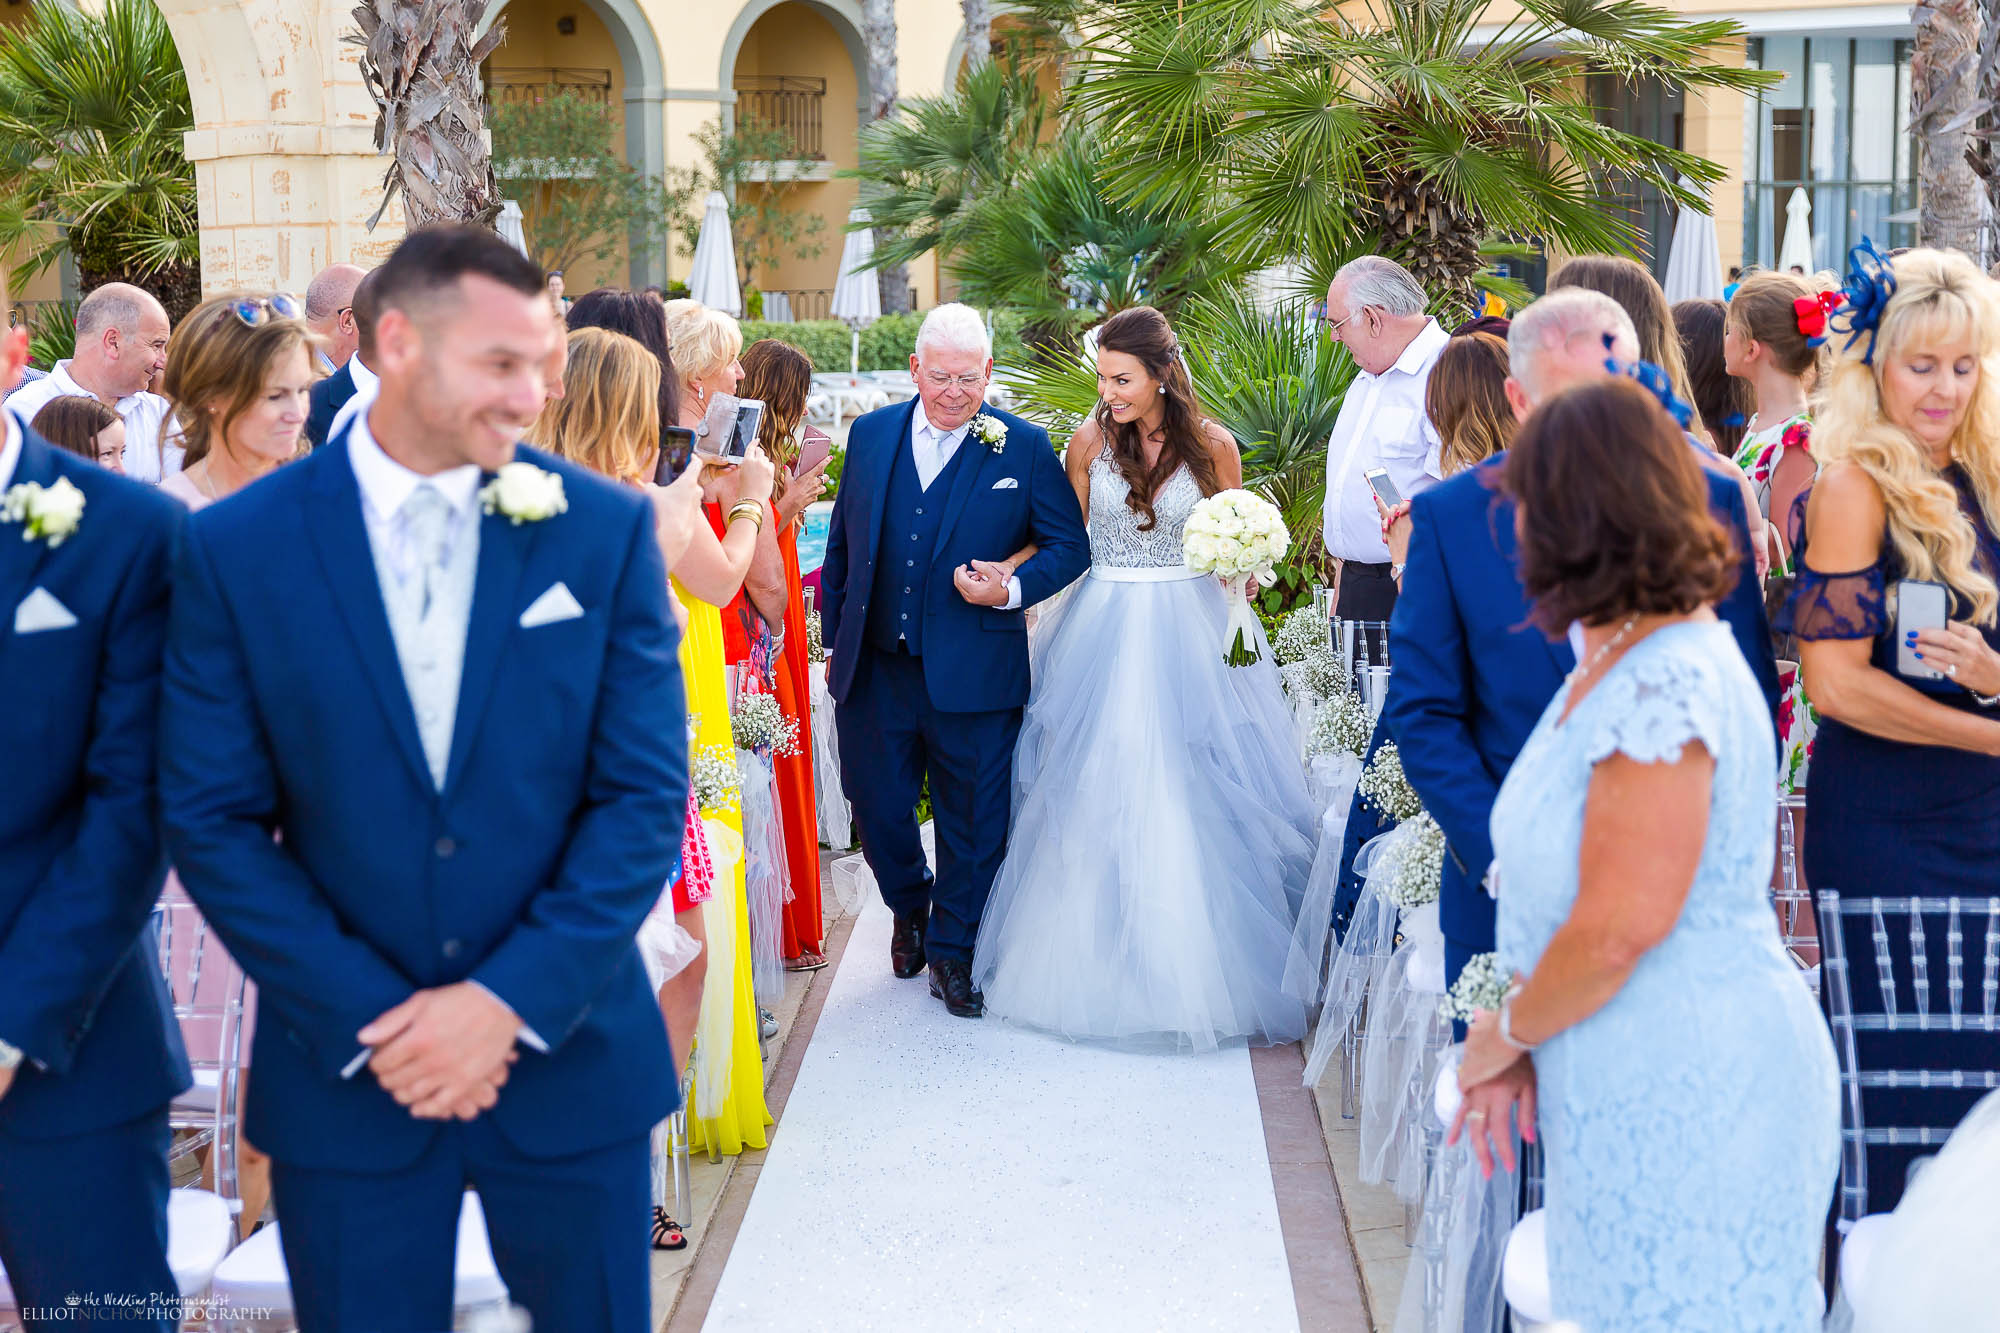 Bride arrives at her wedding ceremony with her father in her blue wedding dress.